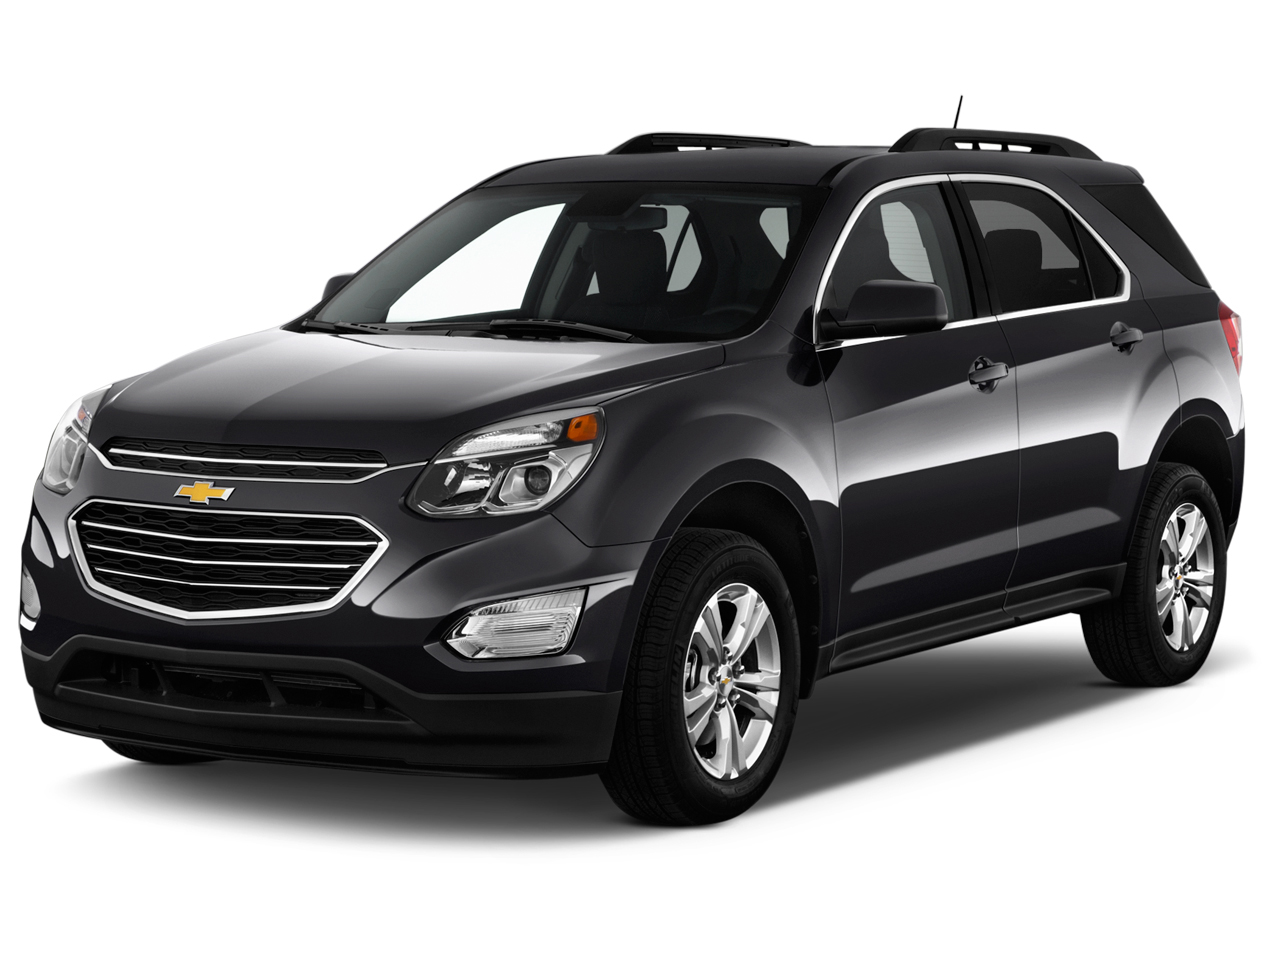 Chevrolet Equinox Vs Gmc Terrain Compare Cars